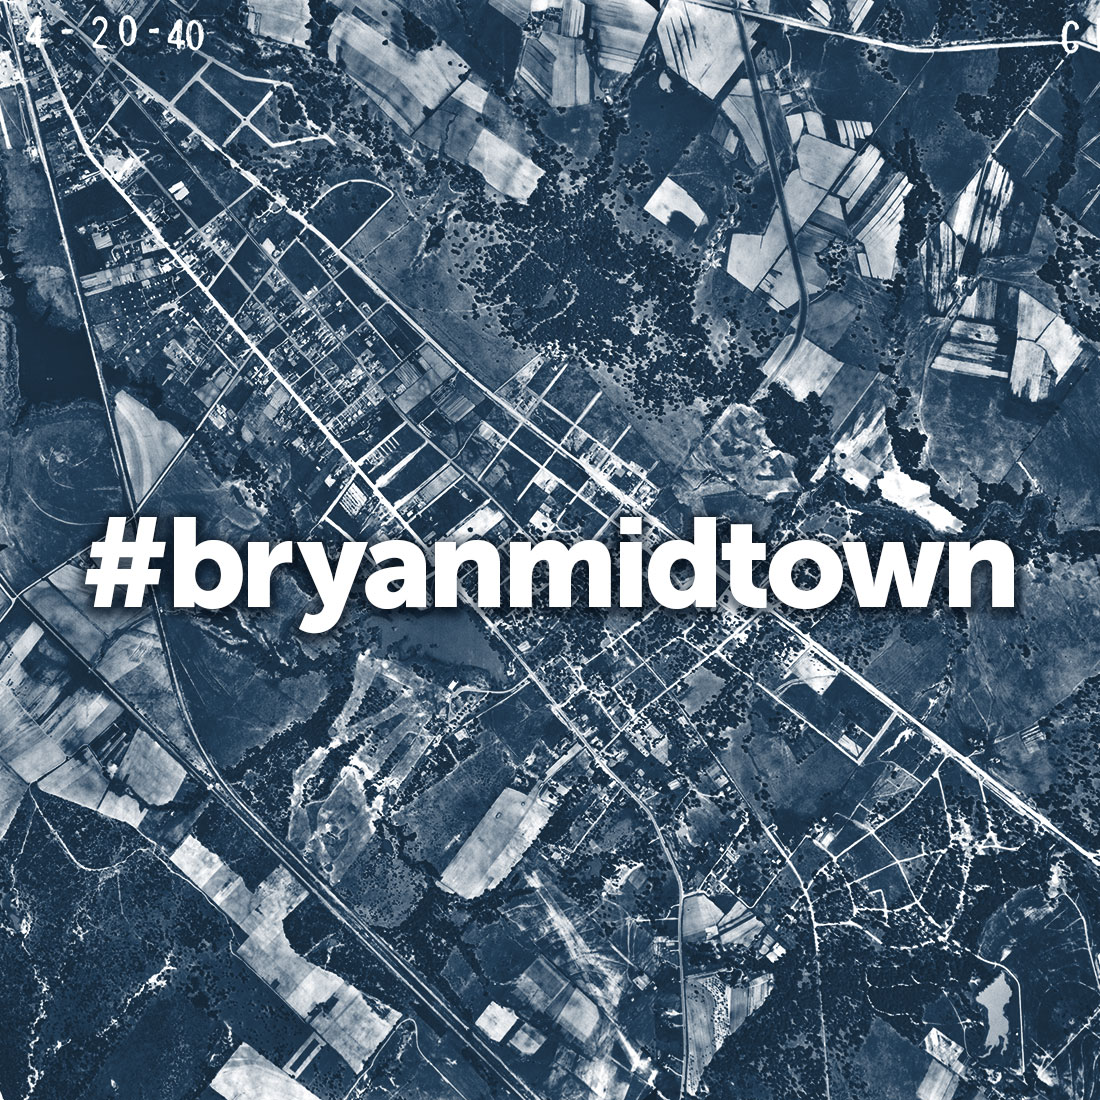 The City of Bryan has embarked on a proactive planning process in the Midtown area.